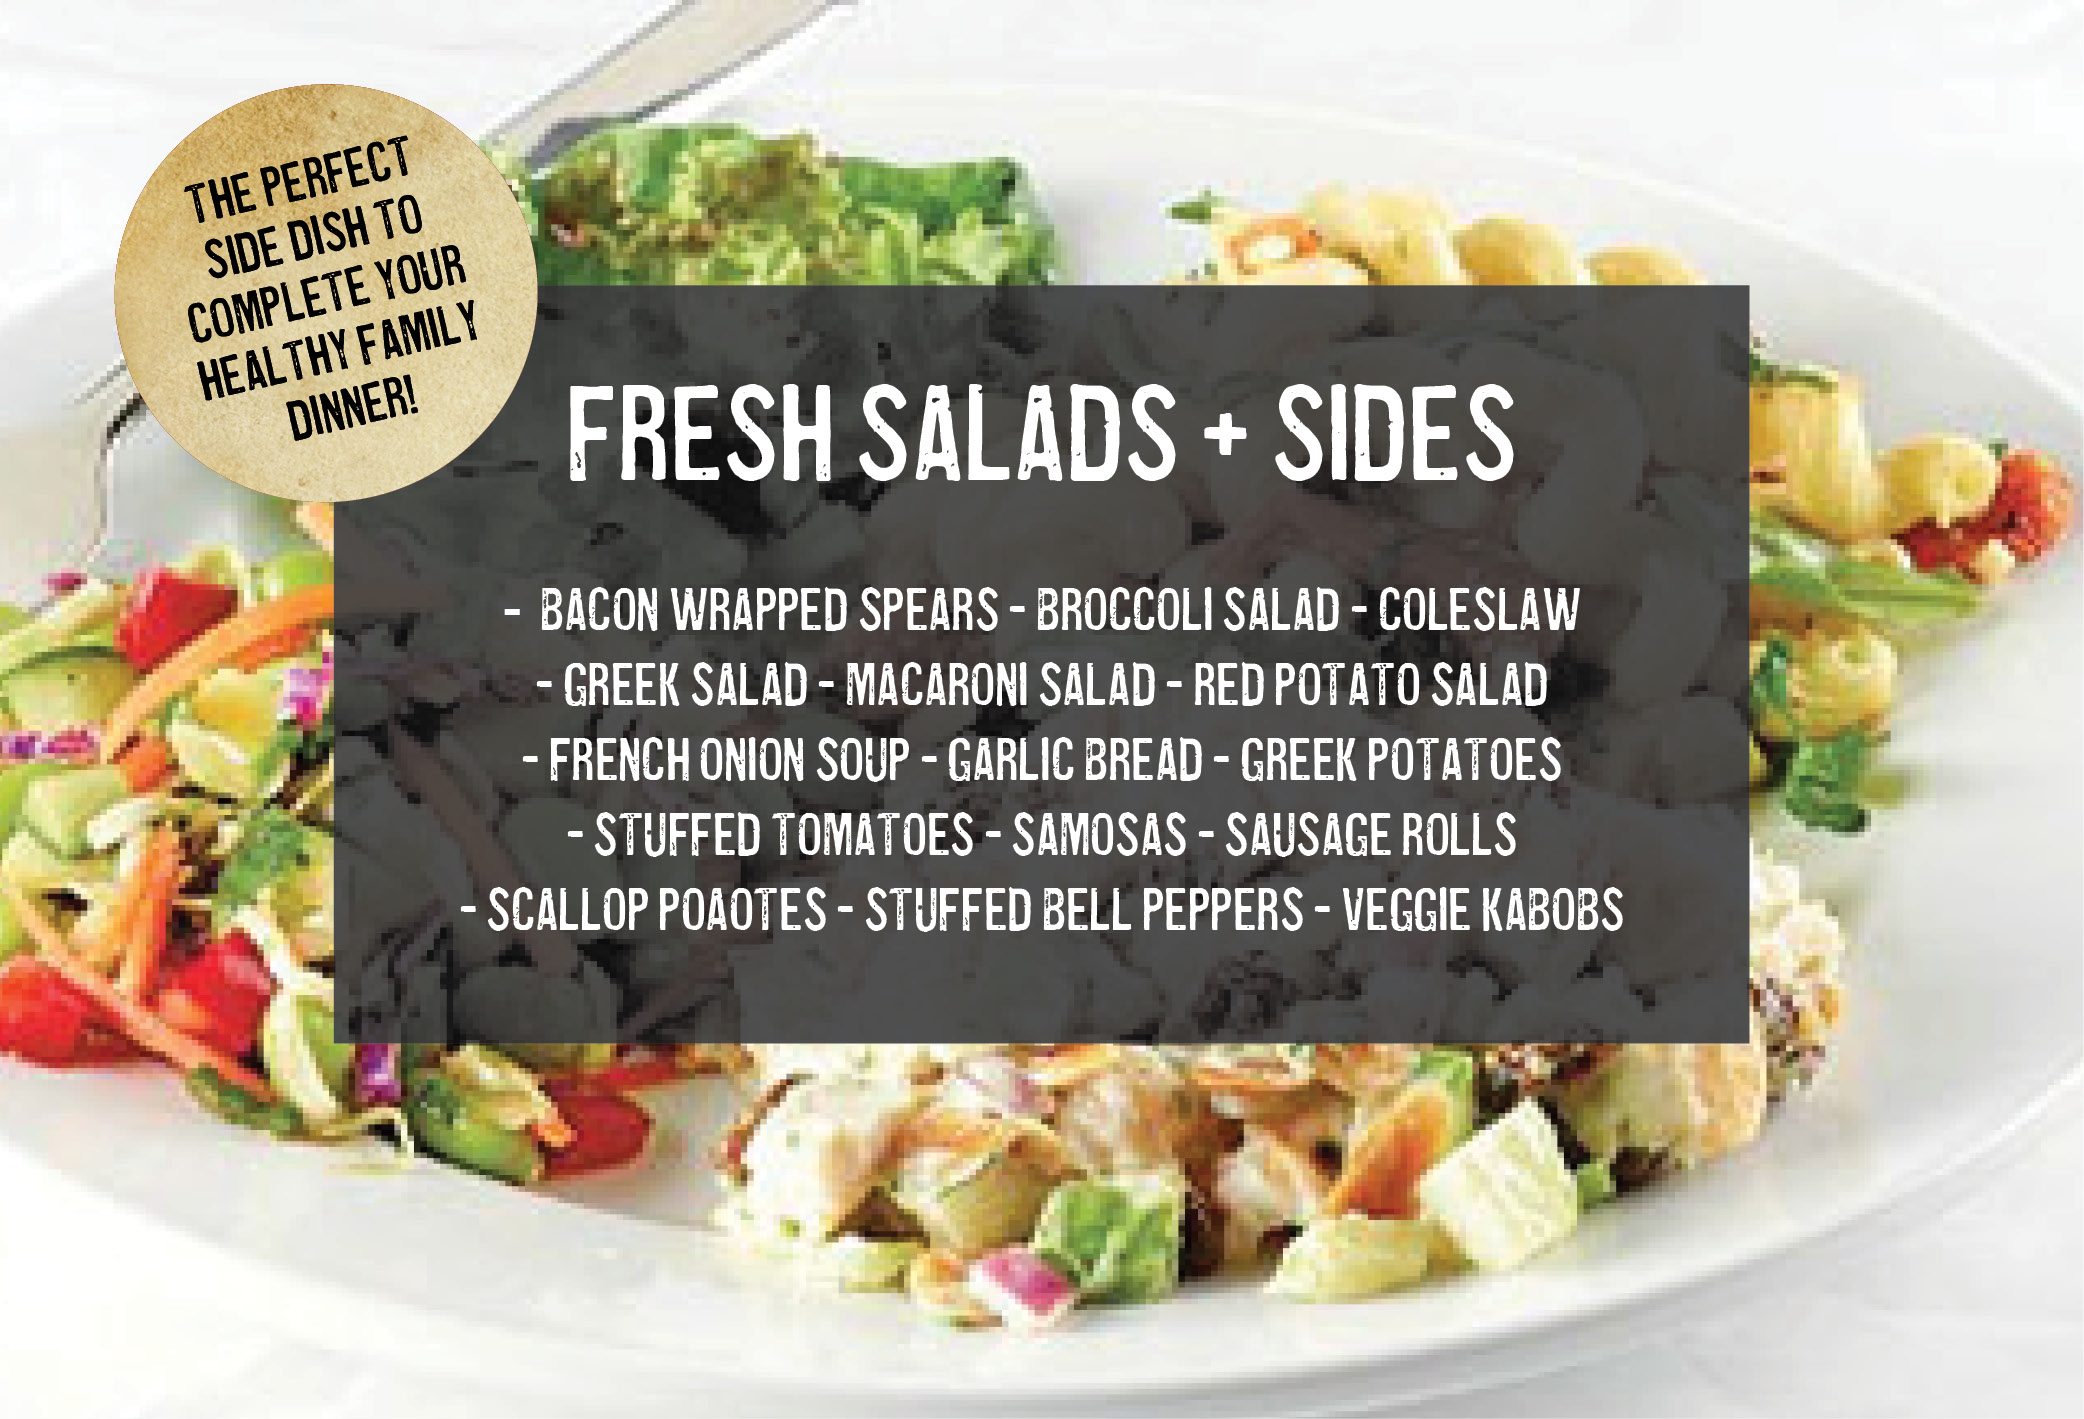 Fresh Salads Products.jpg